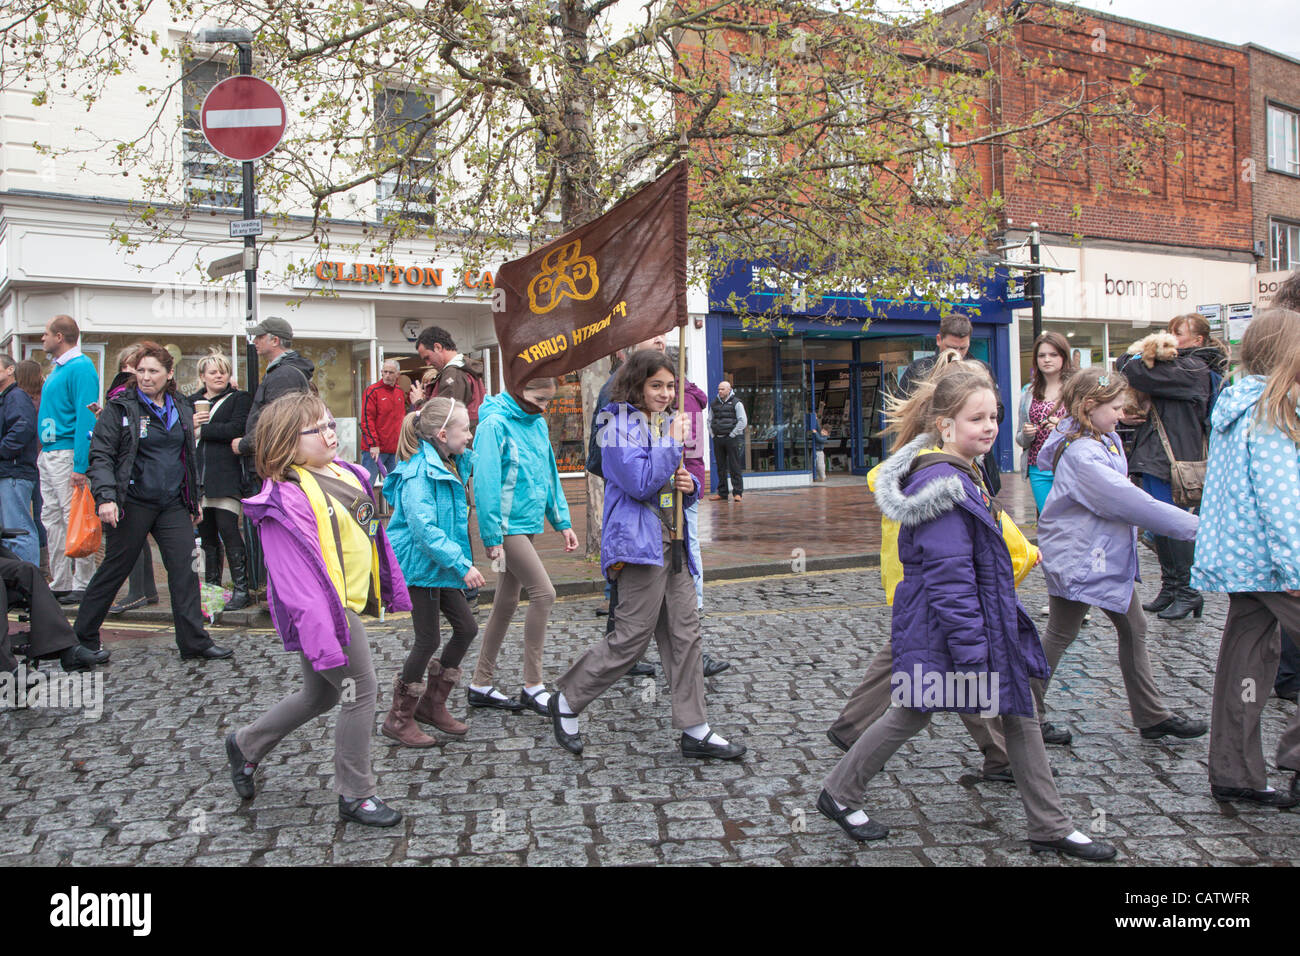 1st North Curry Brownies marching through Taunton town centre, Somerset, England on Sunday 22nd April 2012 to celebrate - Stock Image